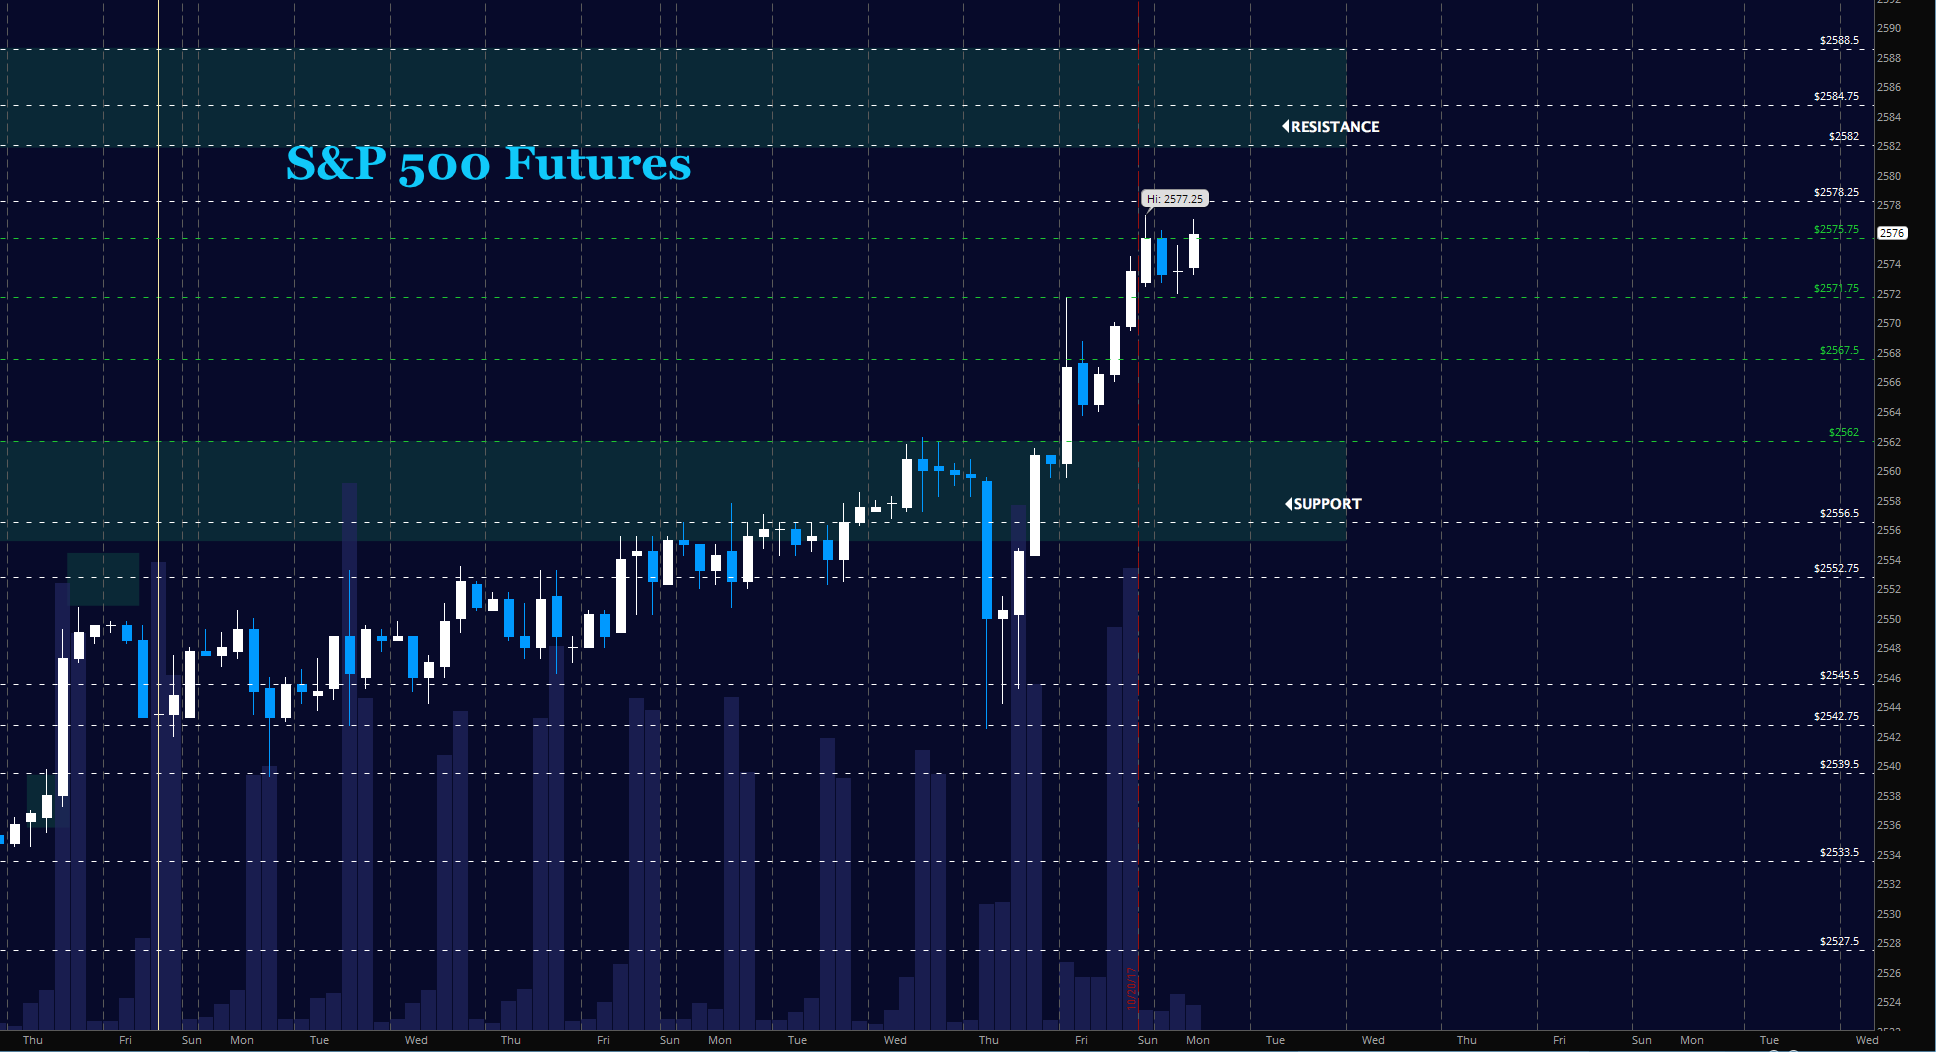 sp 500 futures october 23 monday trading price targets chart